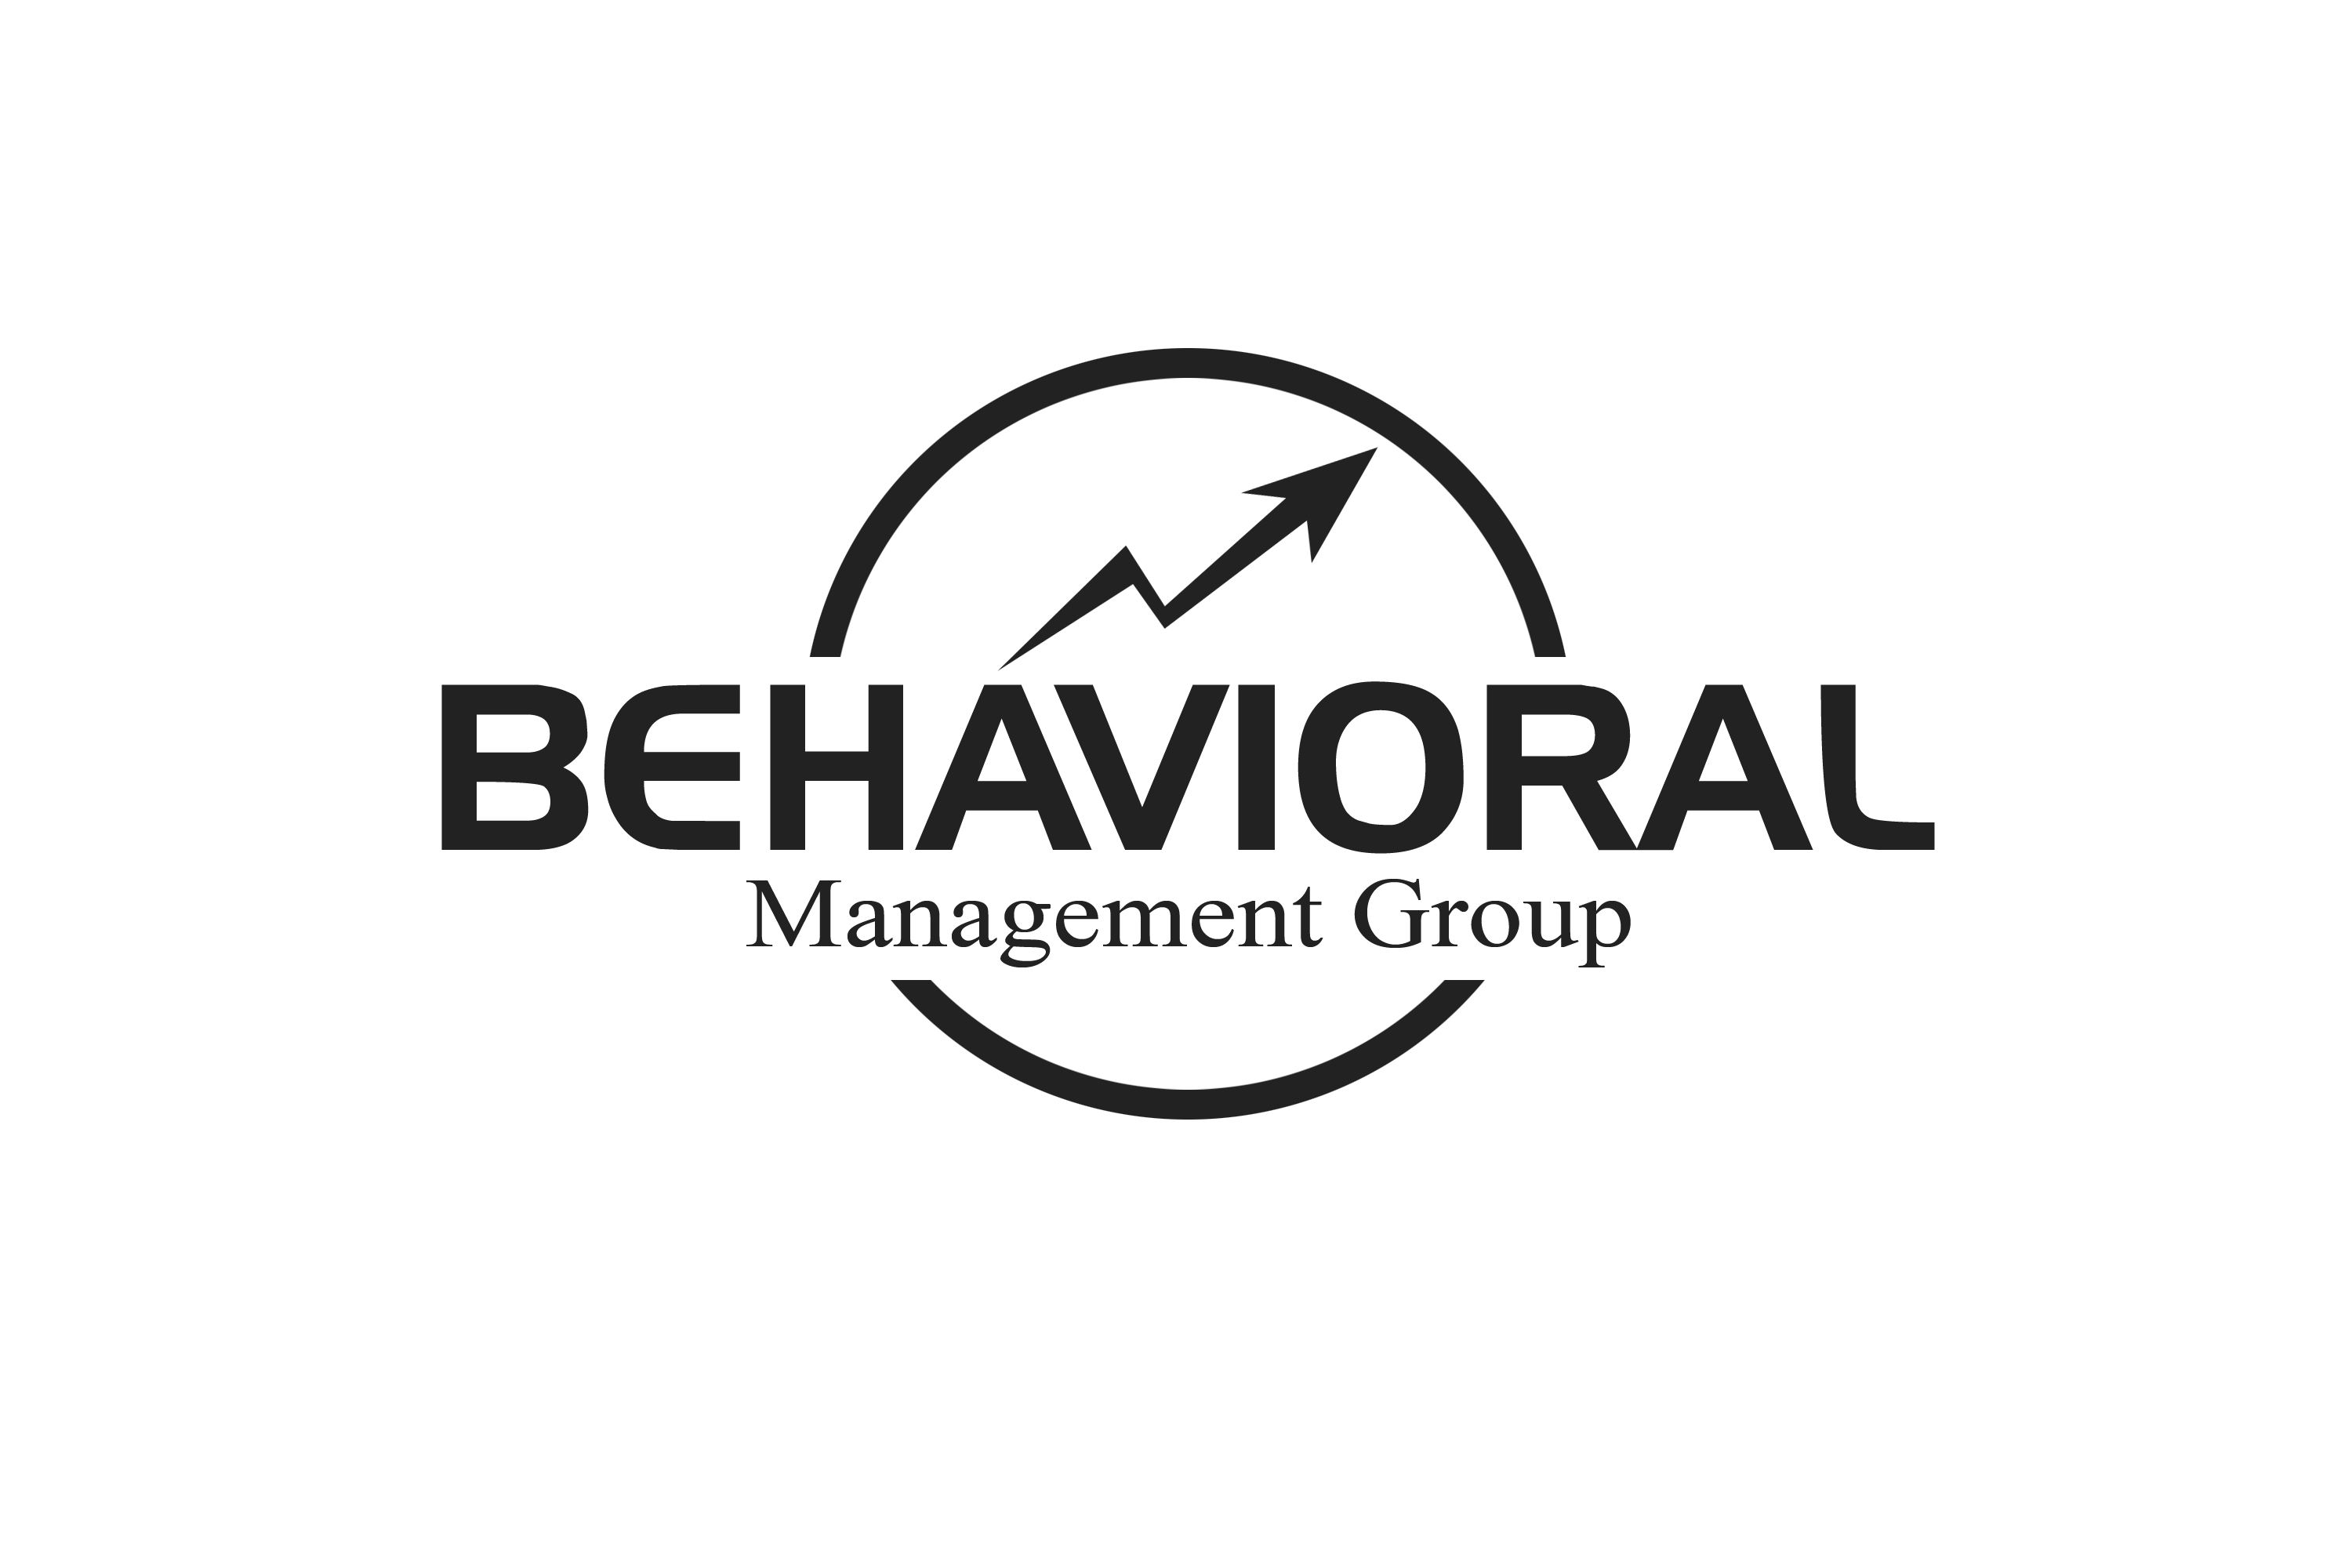 Behavioral Management Group